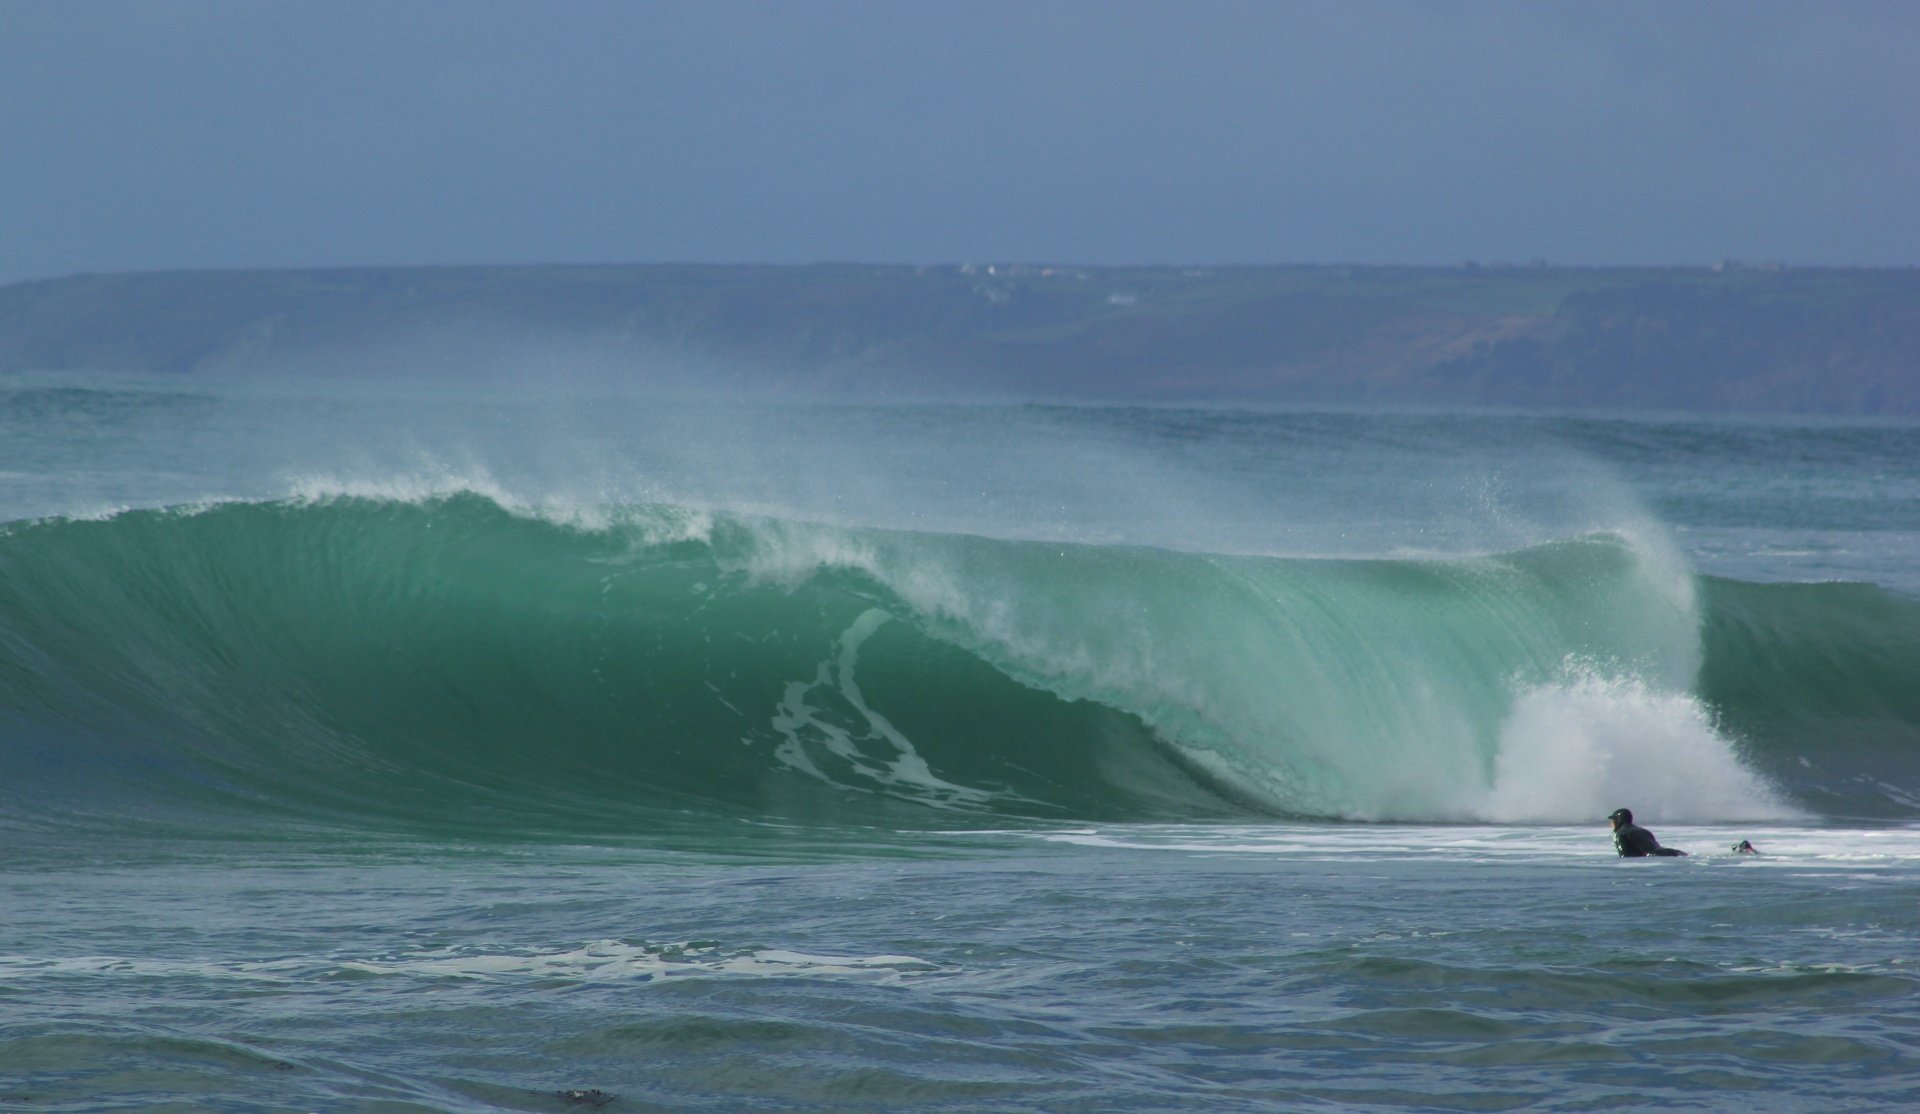 Lukasz Kowalski's photo of Porthleven